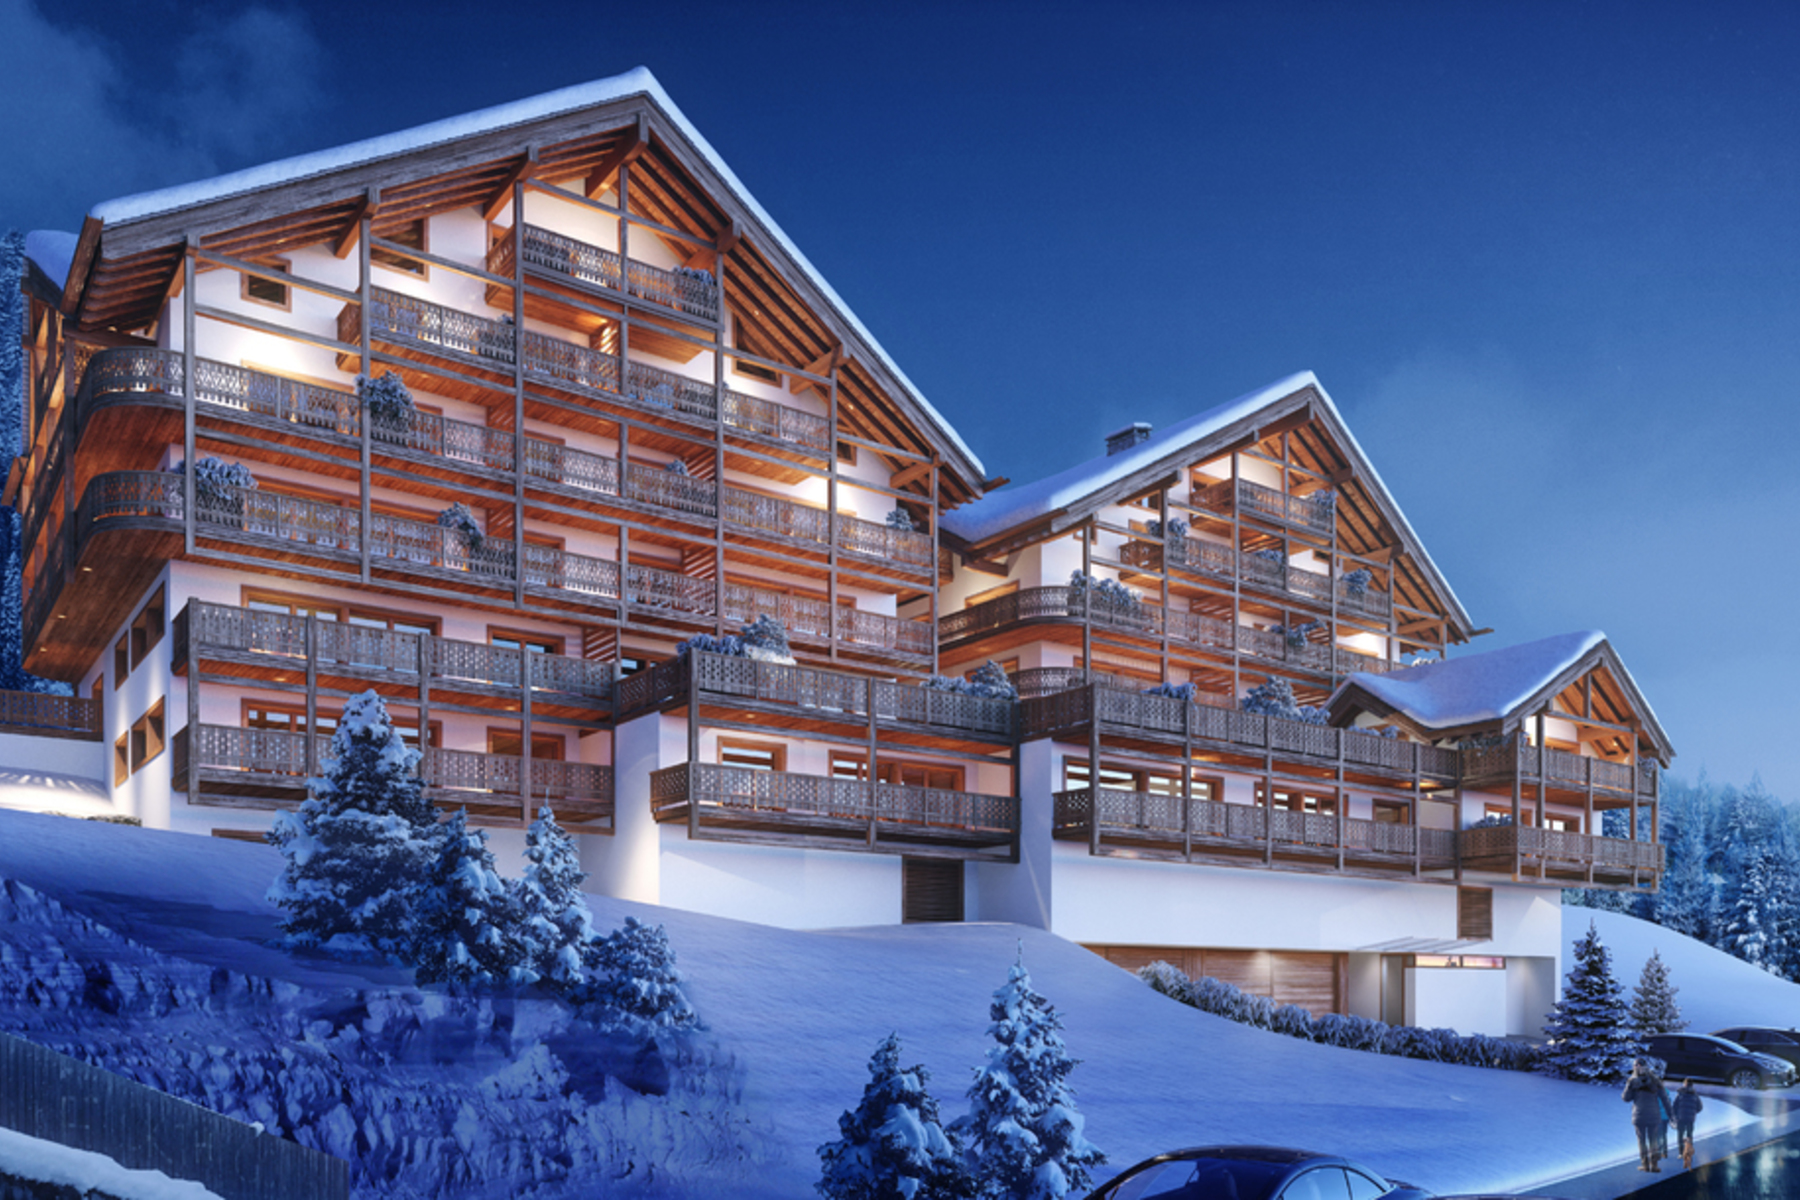 複式單位 為 出售 在 Résidence Le Montagnier - Large duplex with amazing views Champéry Champery, 瓦萊州, 1874 瑞士